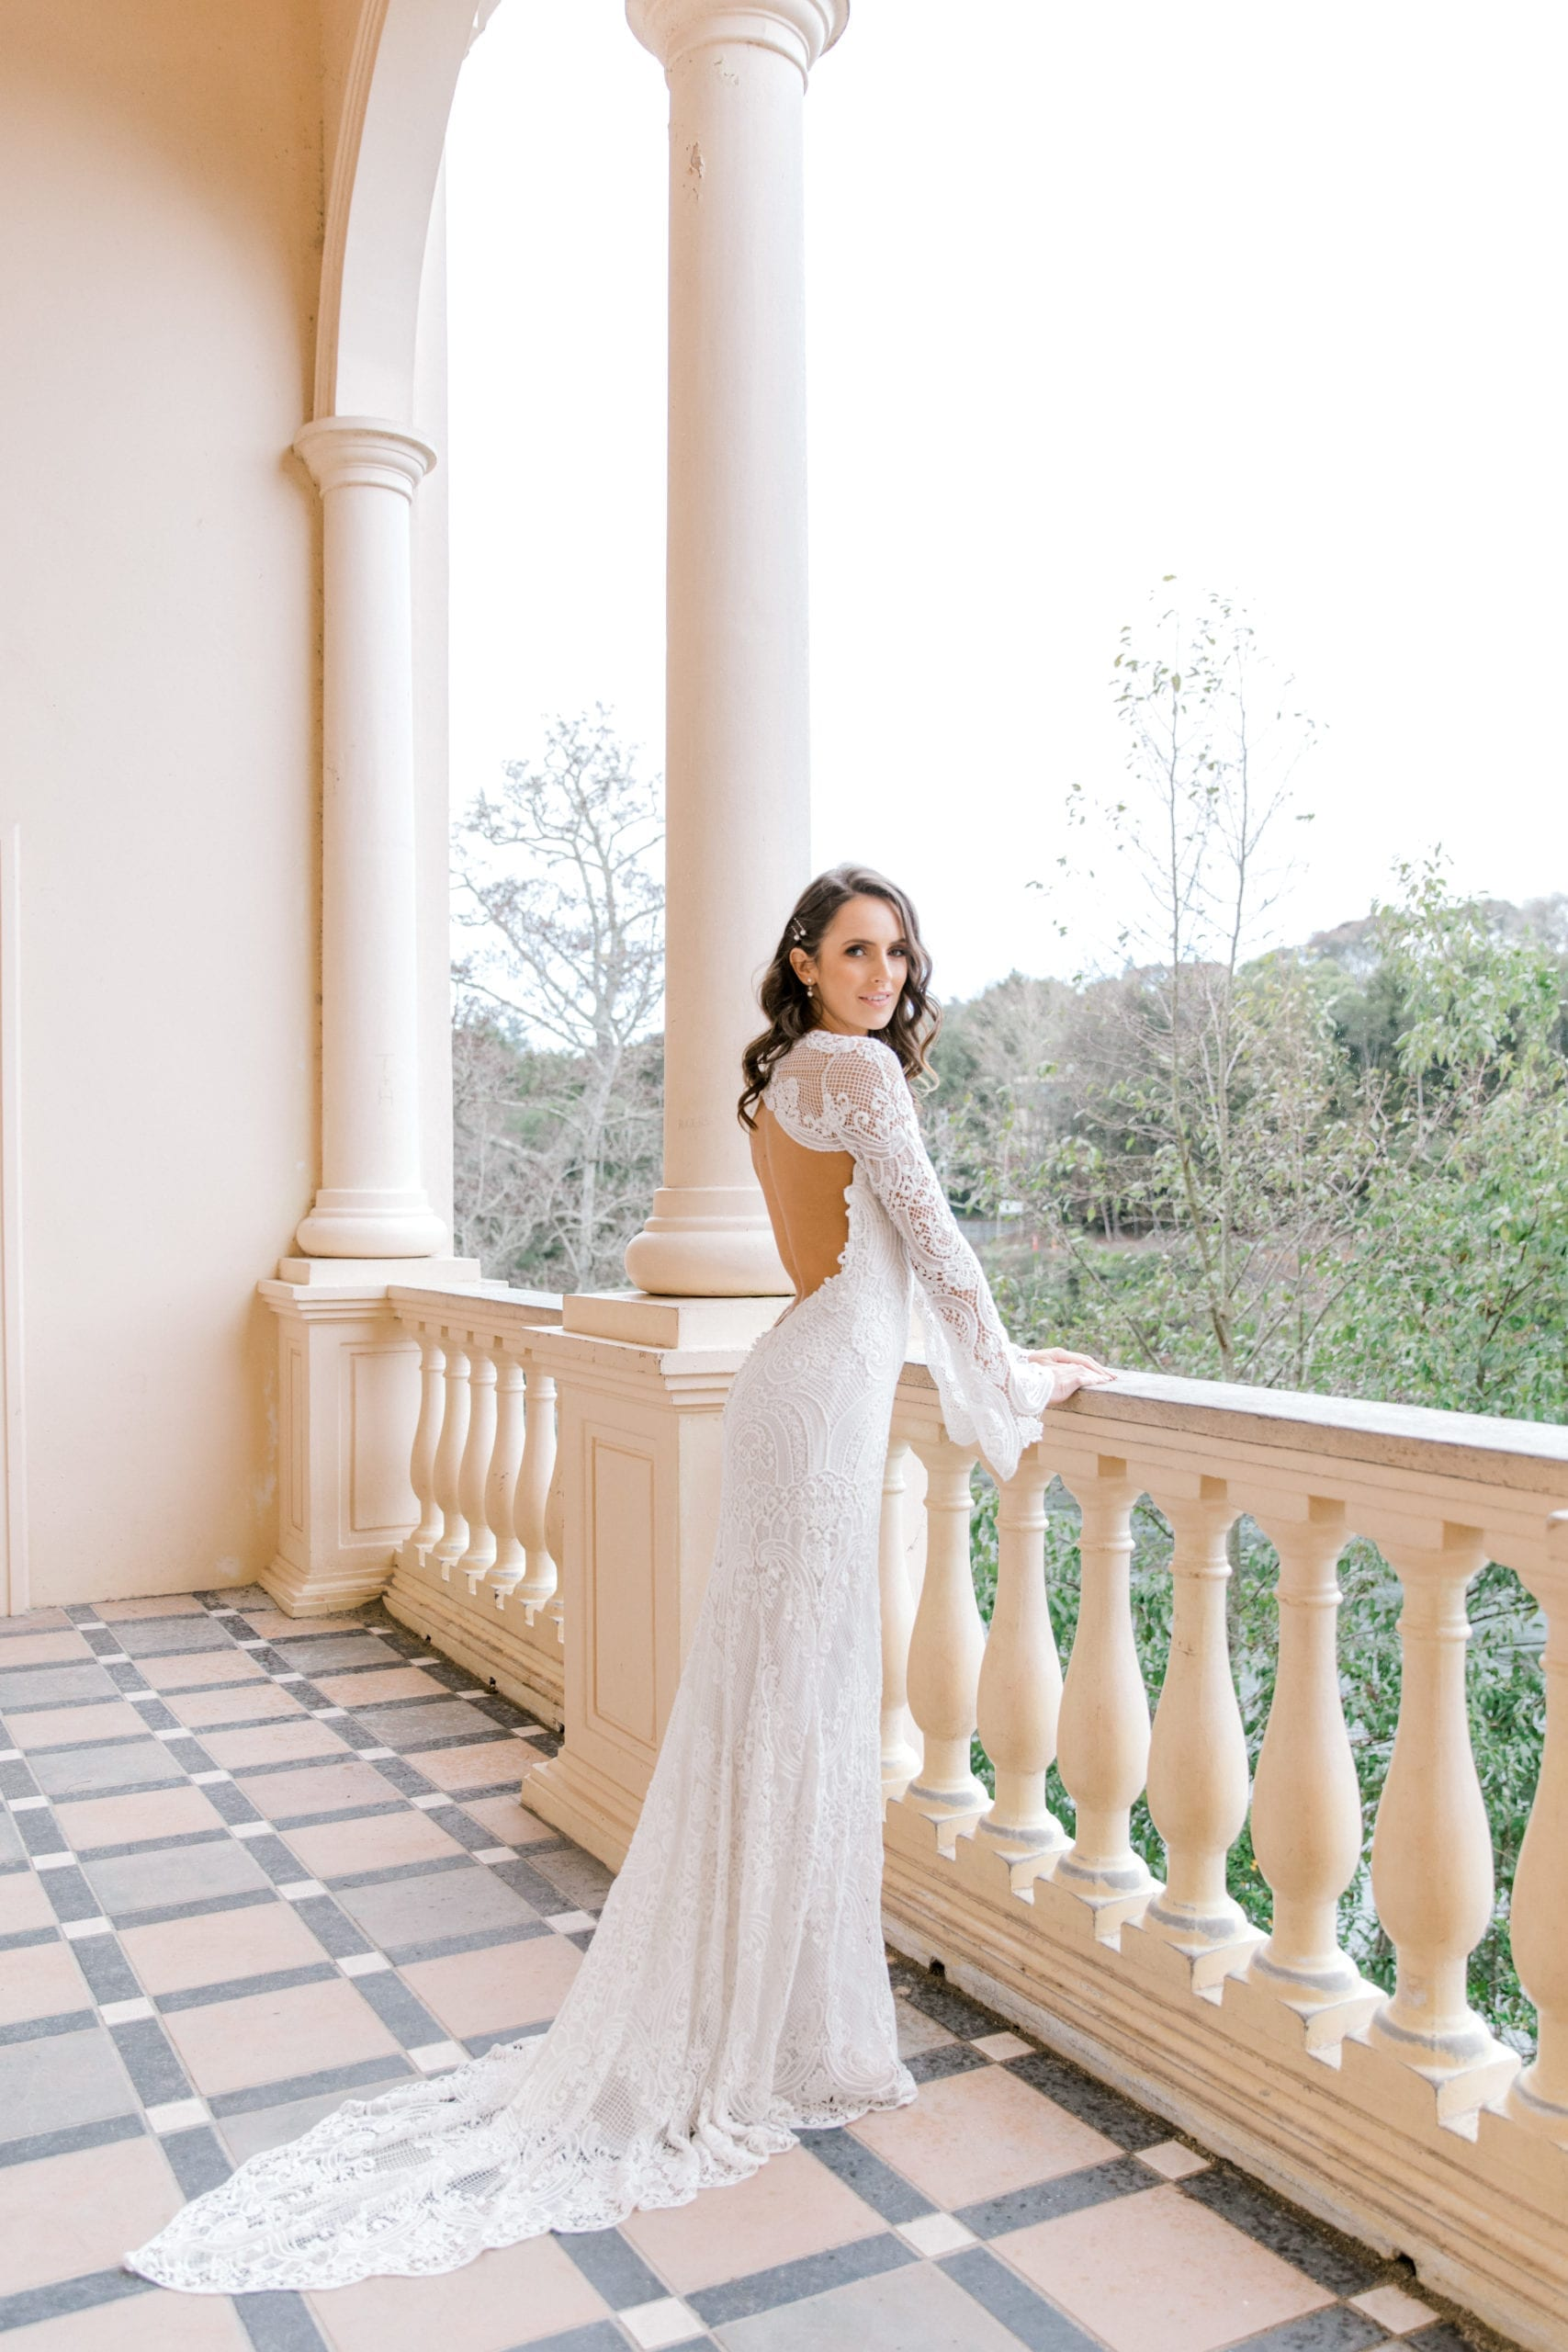 Model wearing Vinka Design Sabine Wedding Dress, a French Crochet Lace Wedding Gown on an open balcony with columns looking over garden